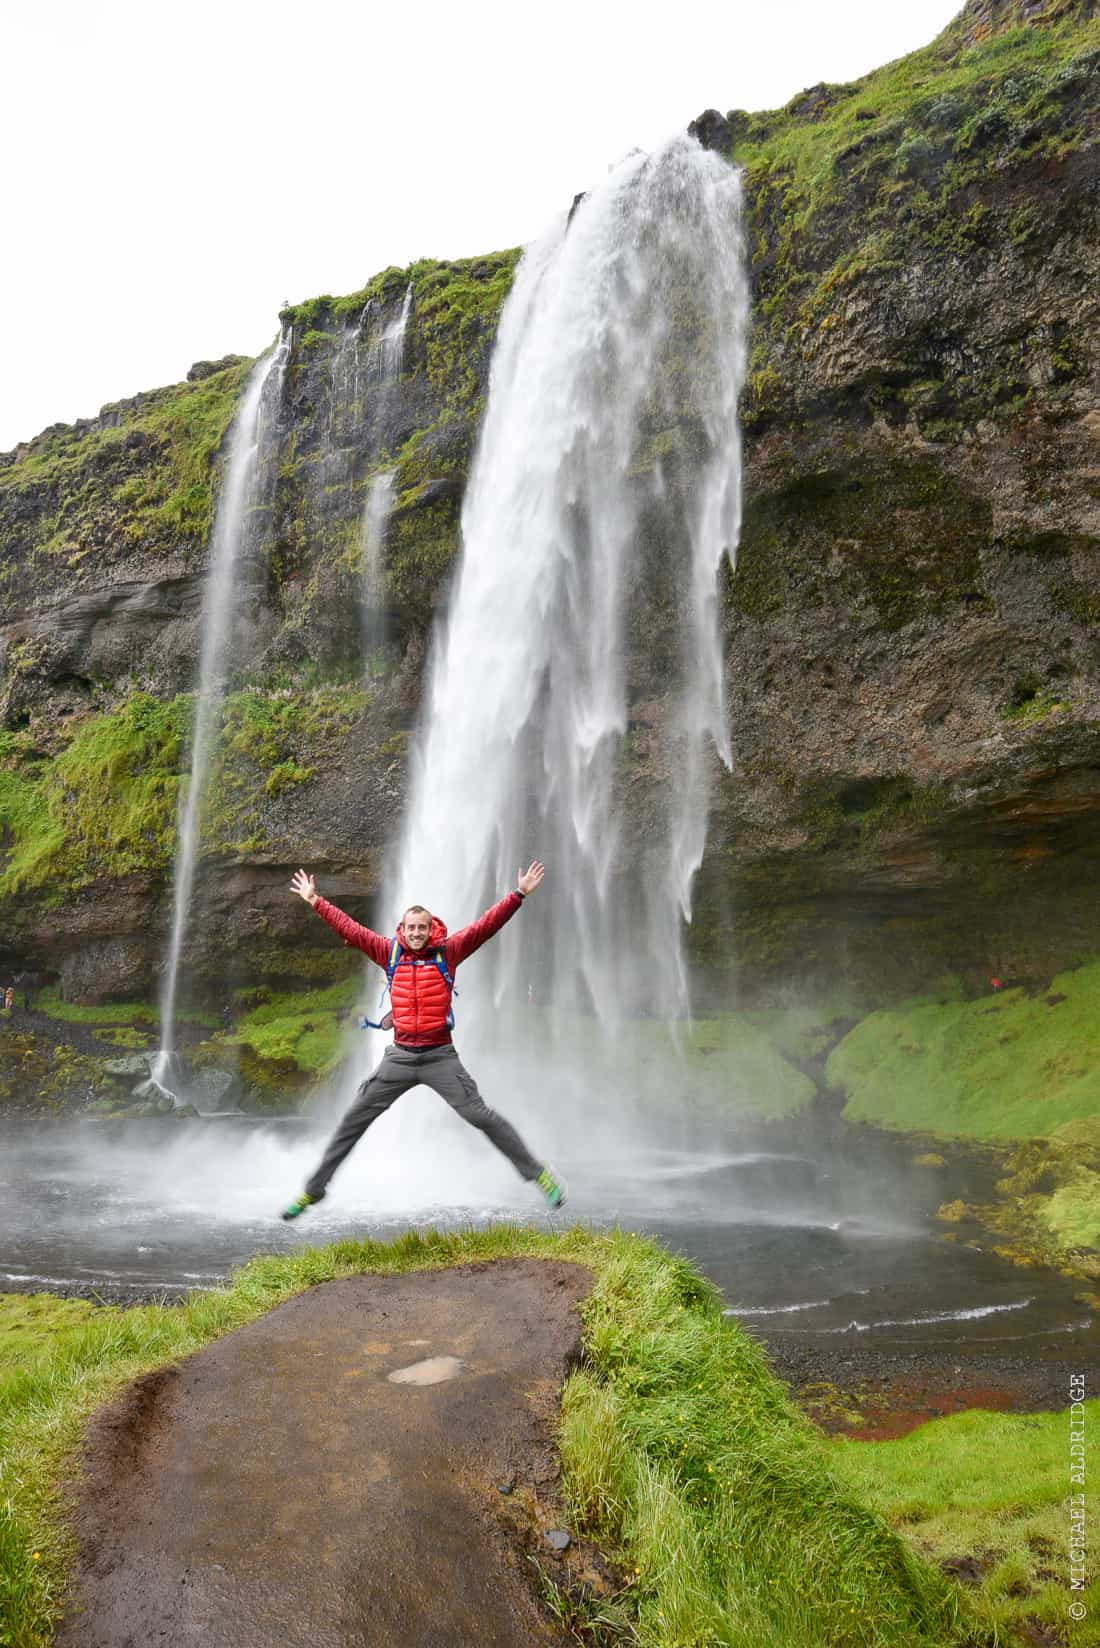 Michael at Seljalandsfoss Waterfall, Iceland